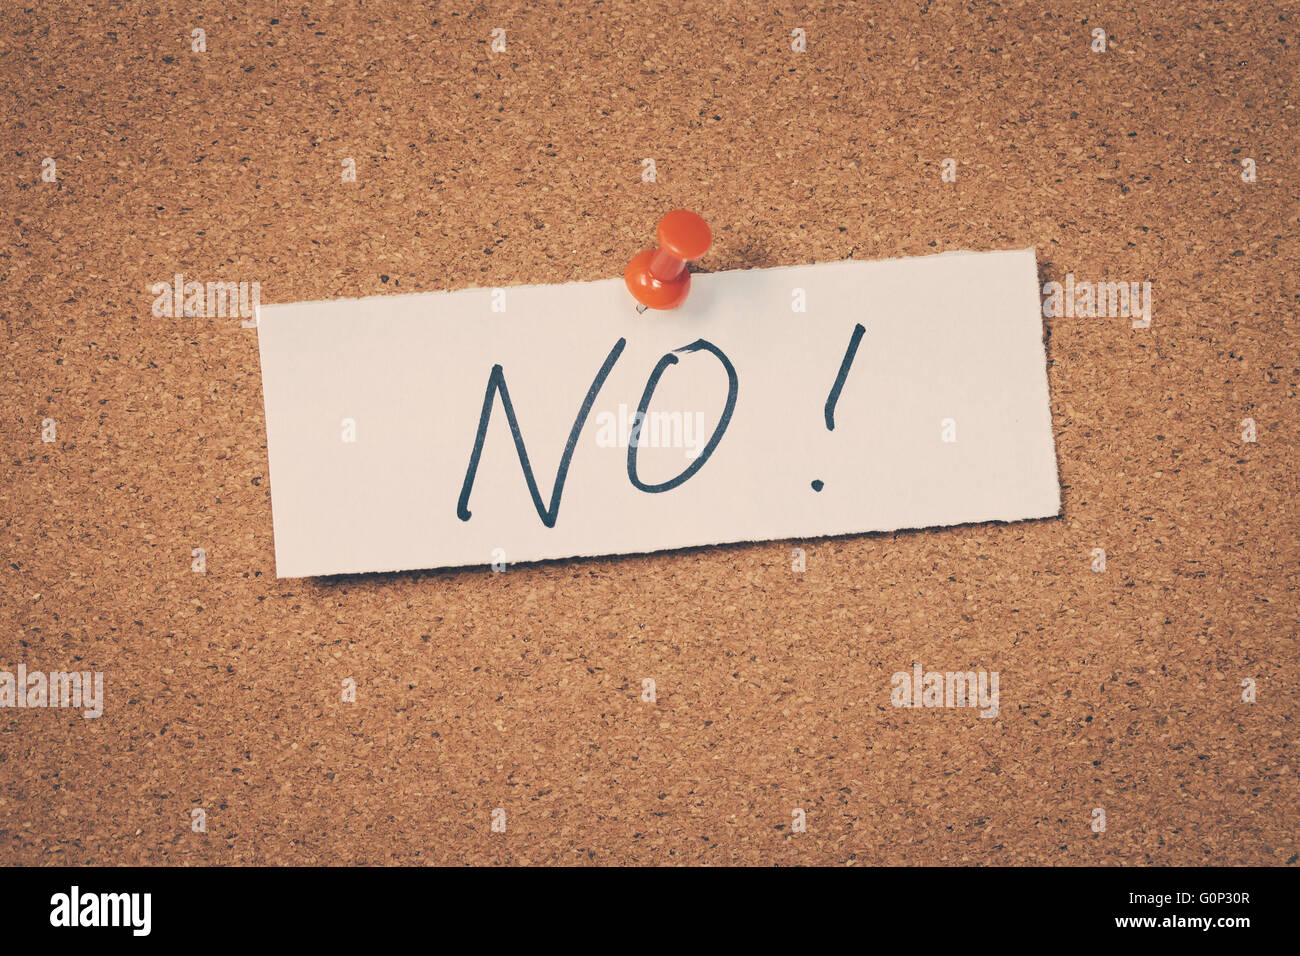 No - Stock Image